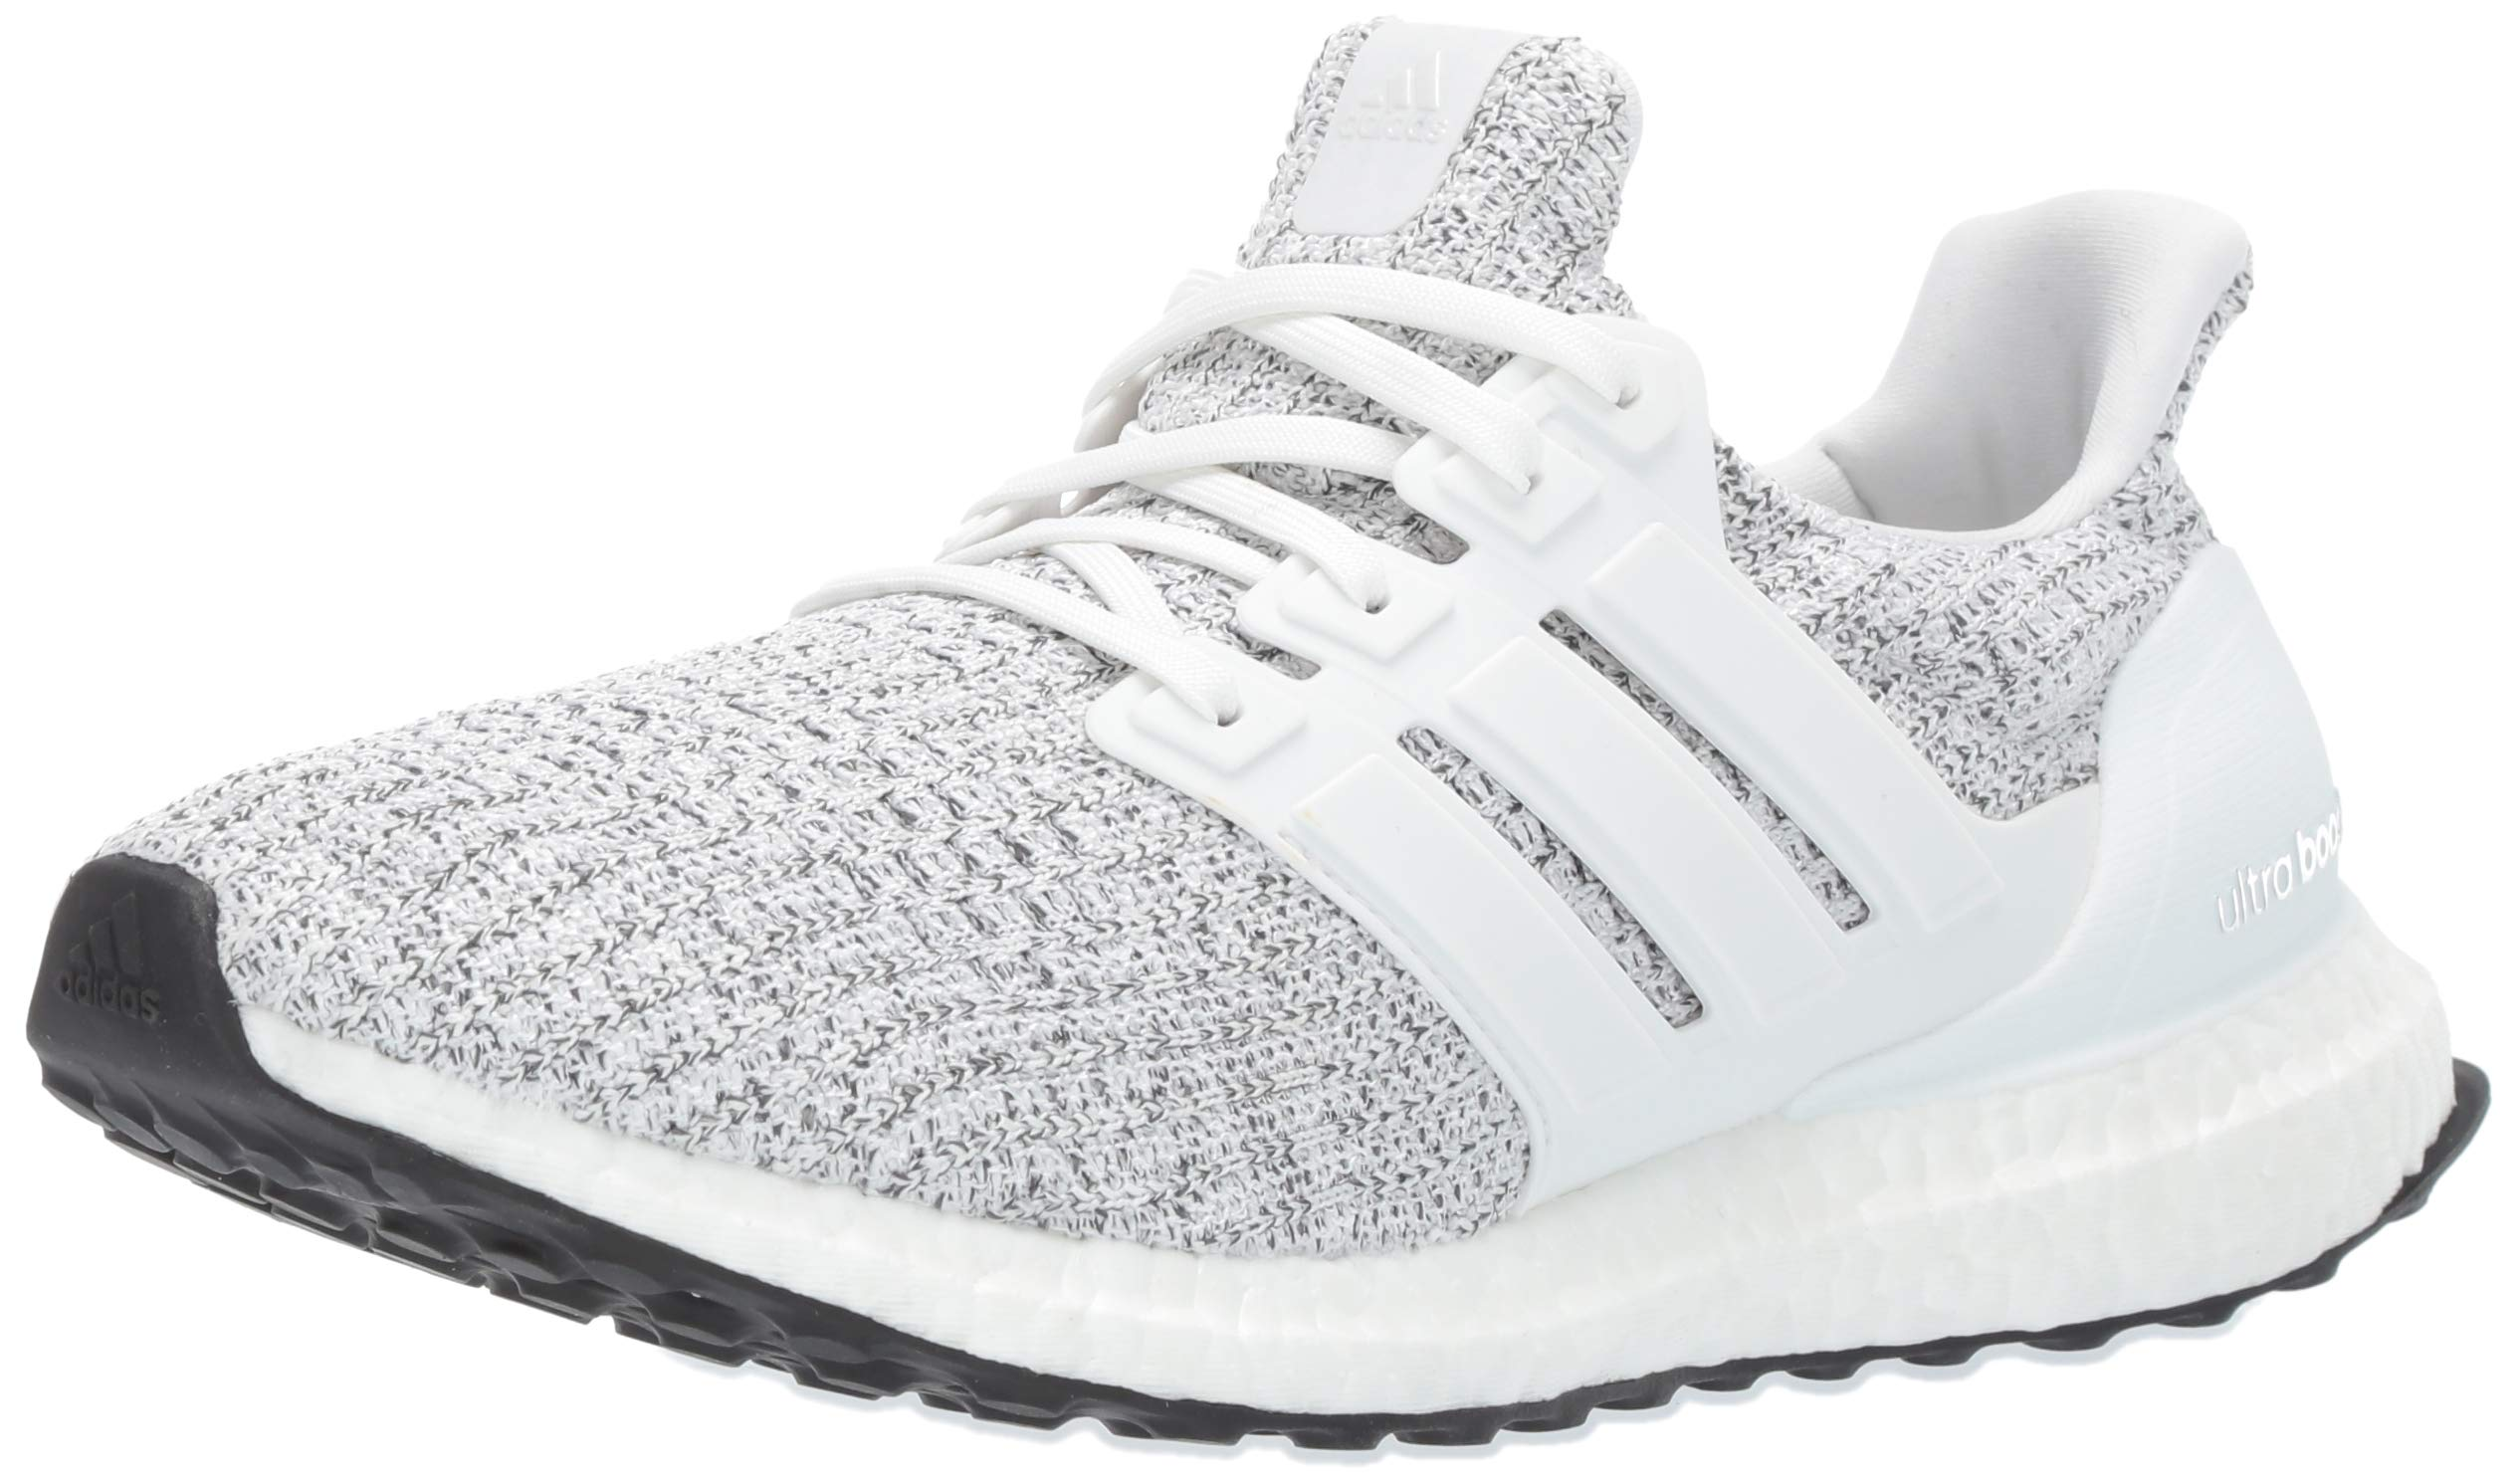 adidas Men's Ultraboost, neon-Dyed/White/Grey, 4 M US by adidas (Image #1)